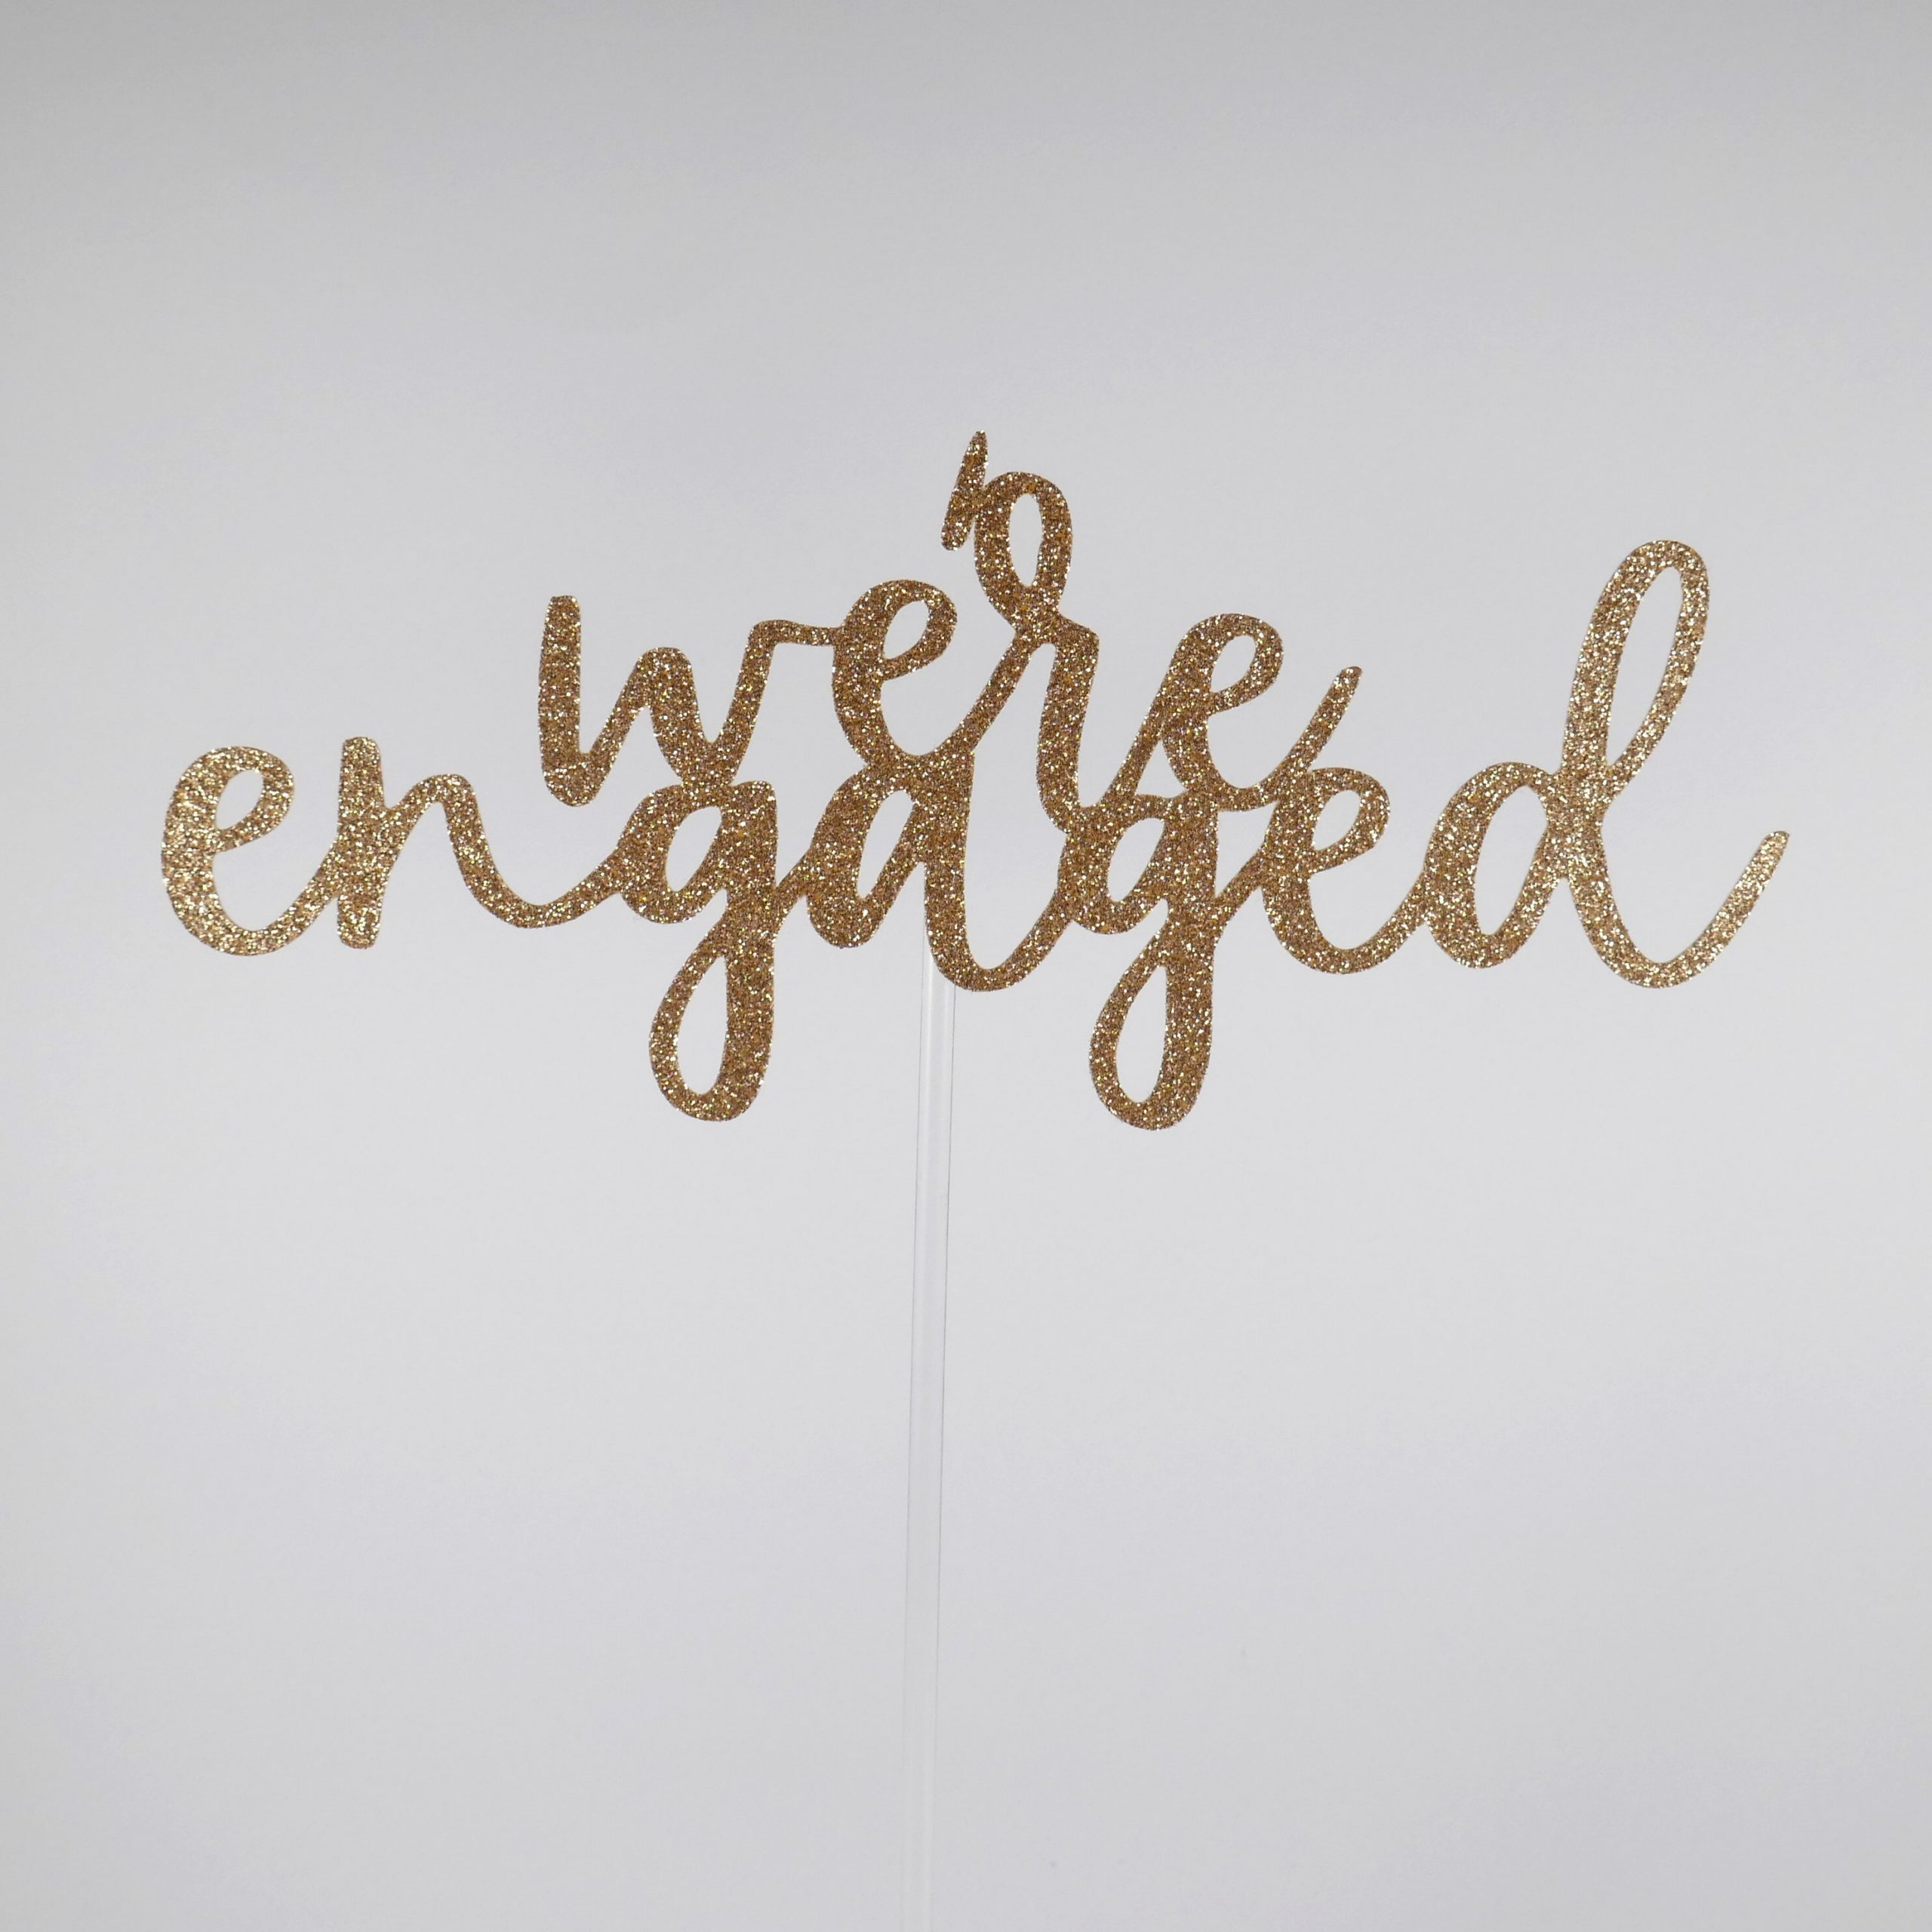 Engagement Cake Topper, We're Engaged Getting Married Topper